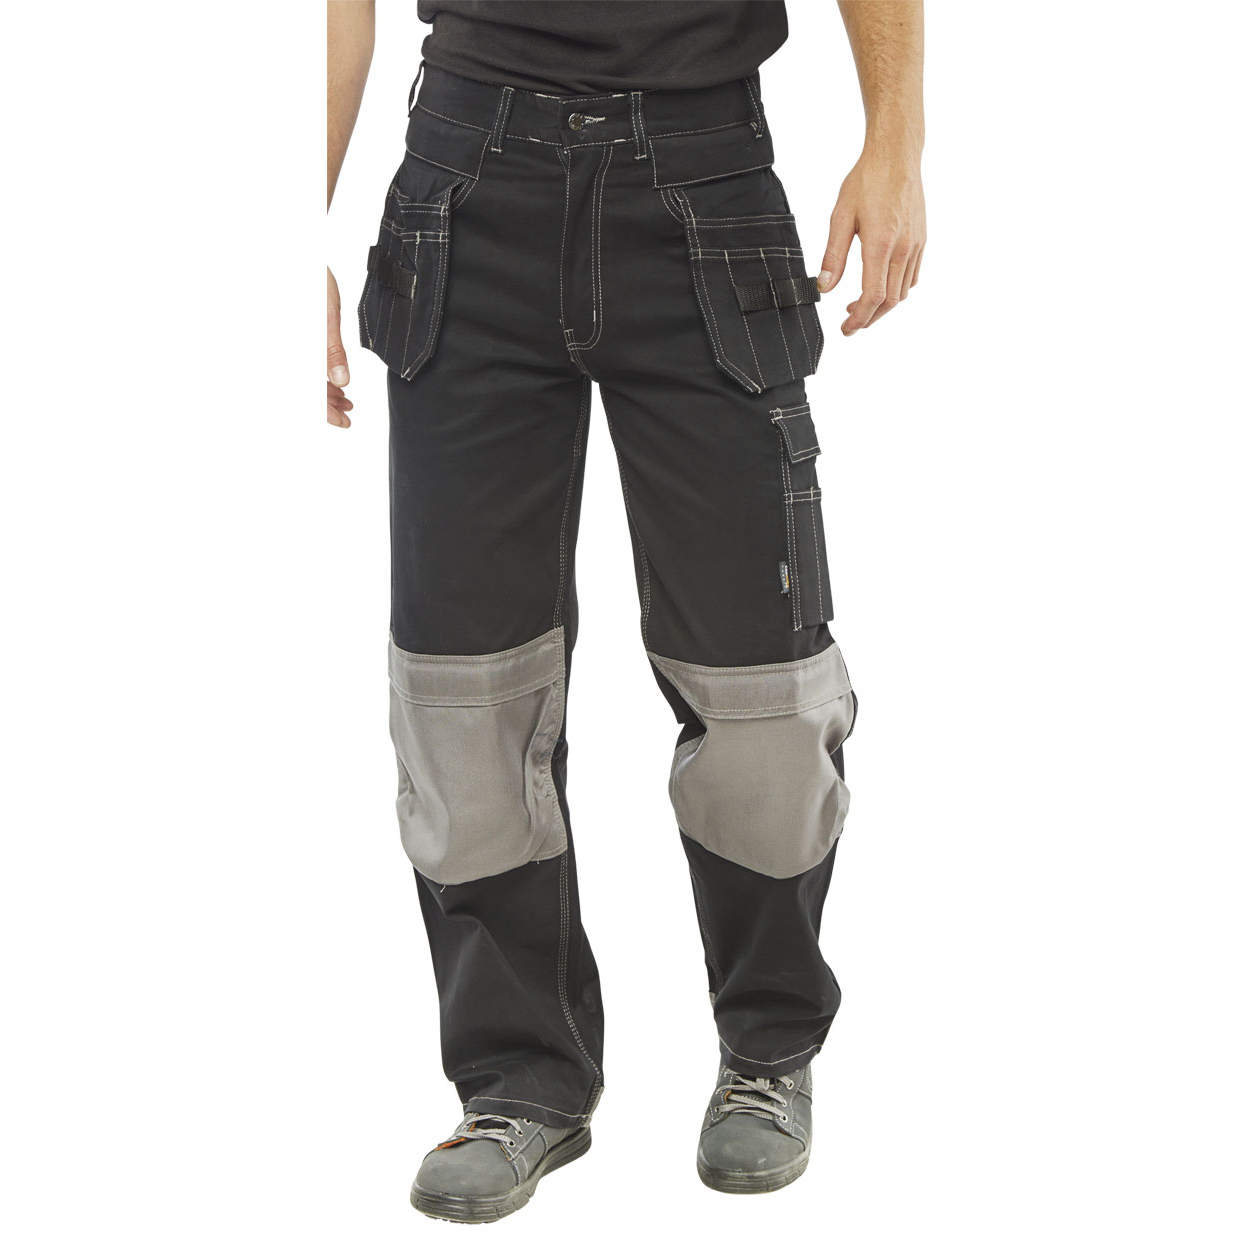 Click Workwear Kington Trousers Multipurpose Pockets Black 34 Ref KMPTBL34 Up to 3 Day Leadtime